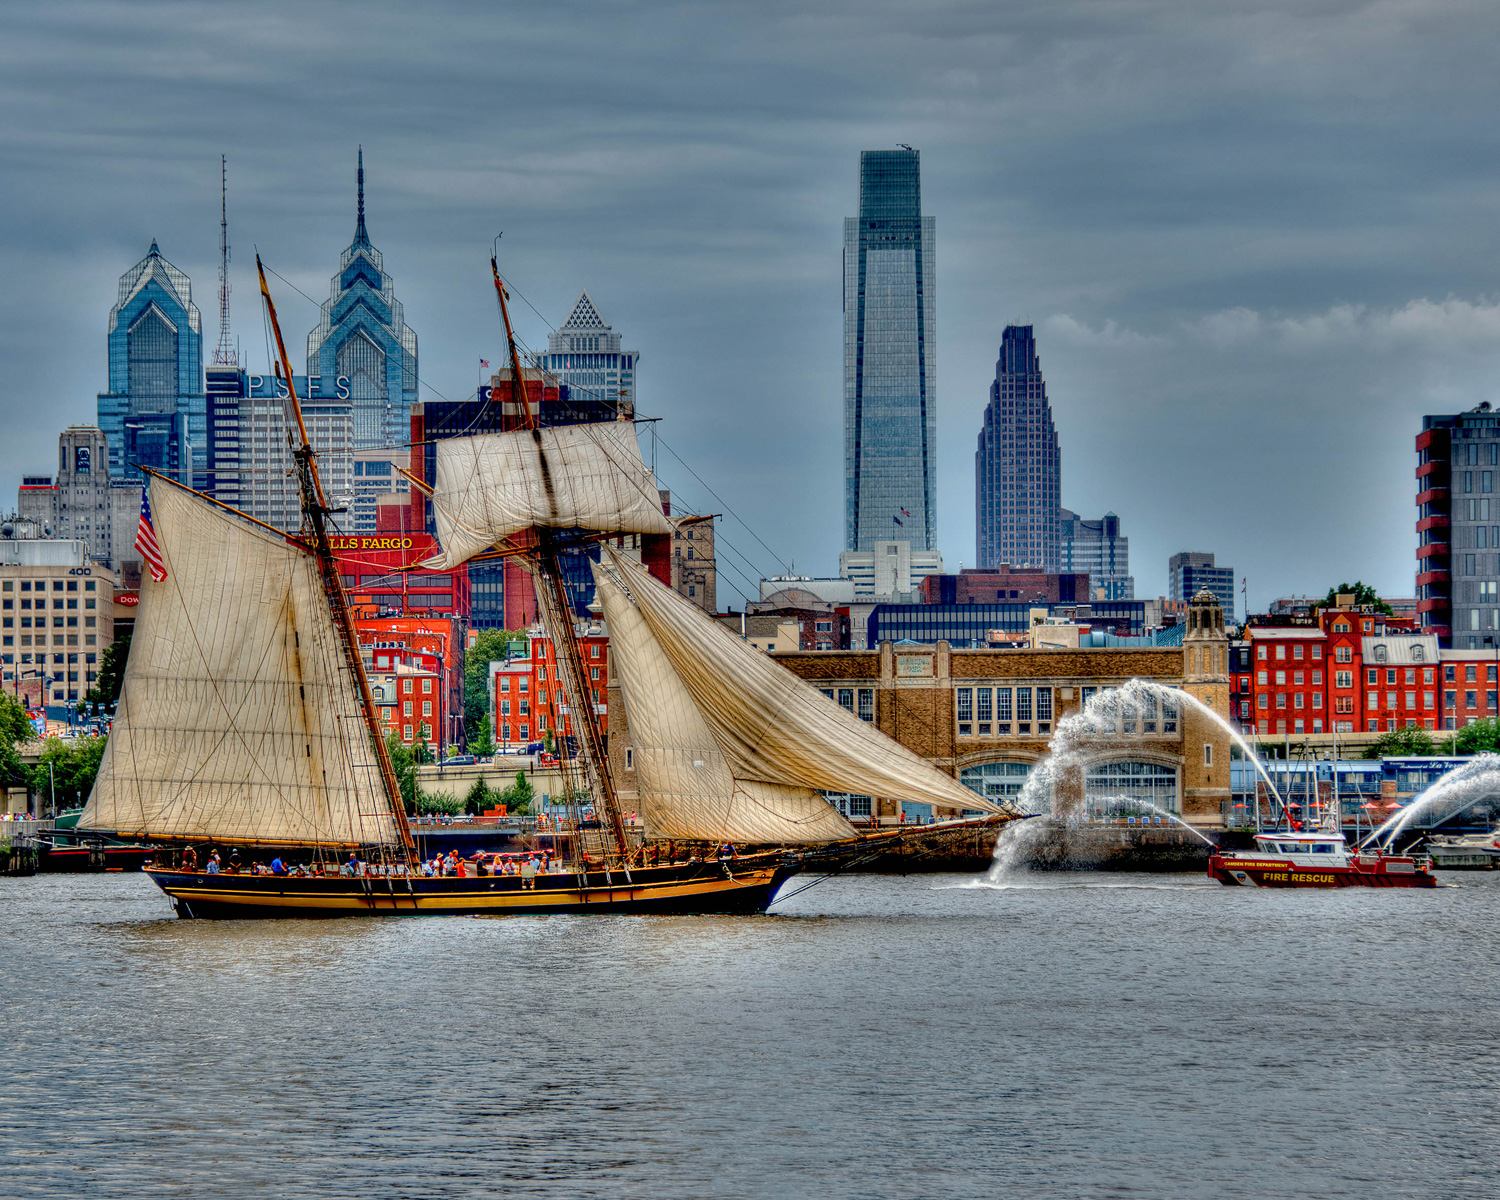 David Aloisio - Tall  Ships in Philadelphia